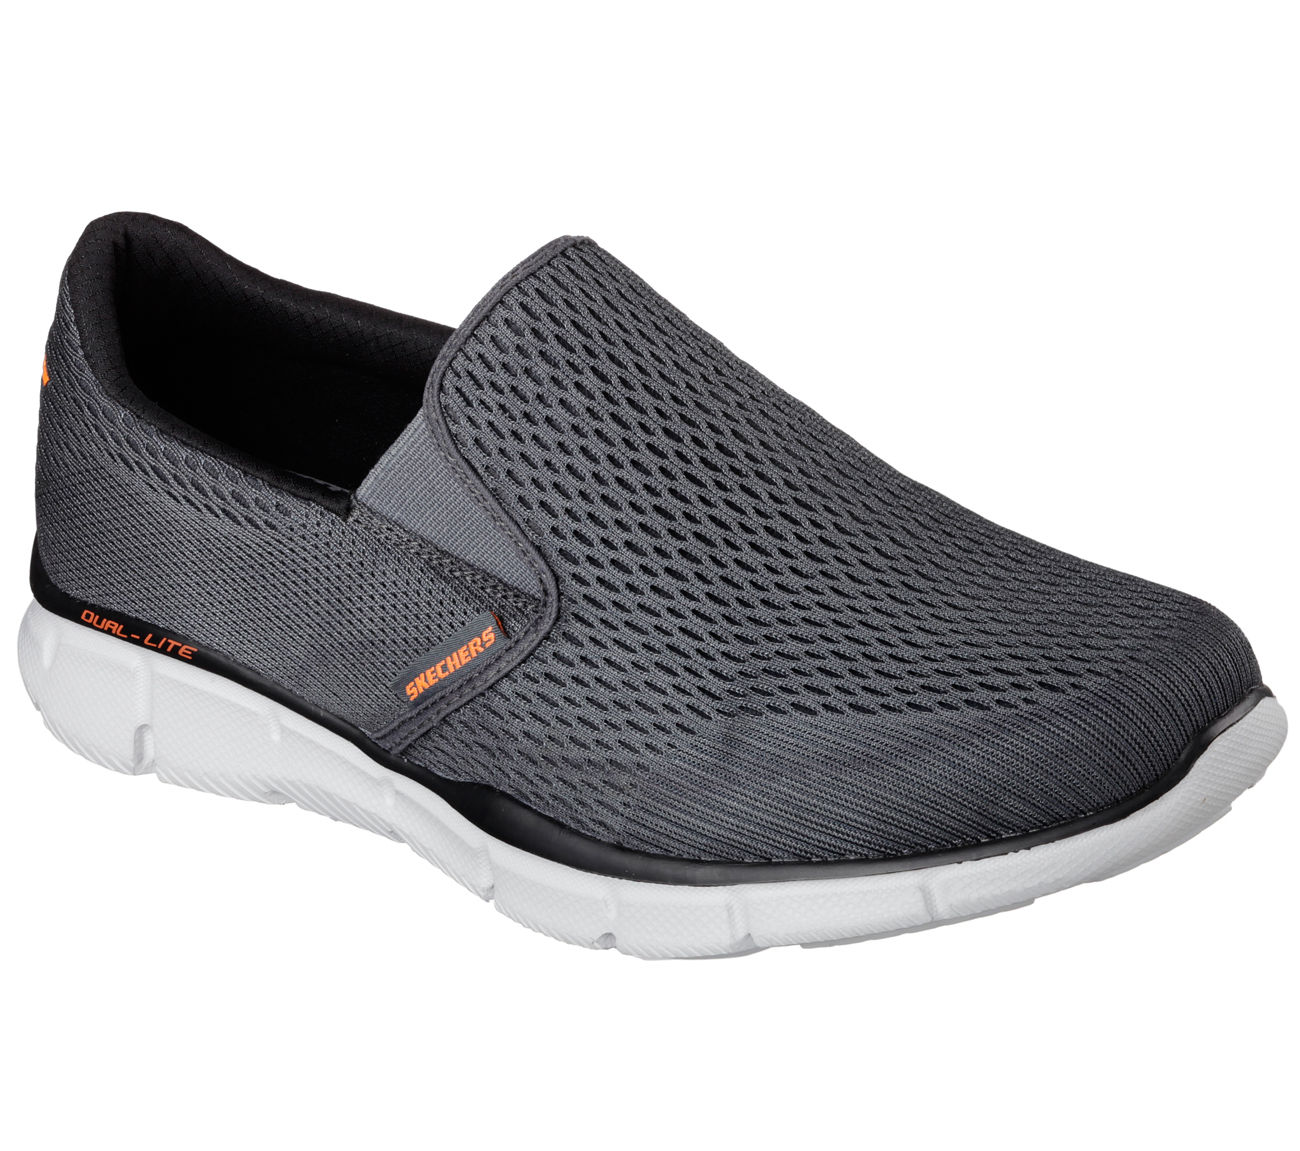 Mens Skechers Equalizer Double Play Casual Slip On